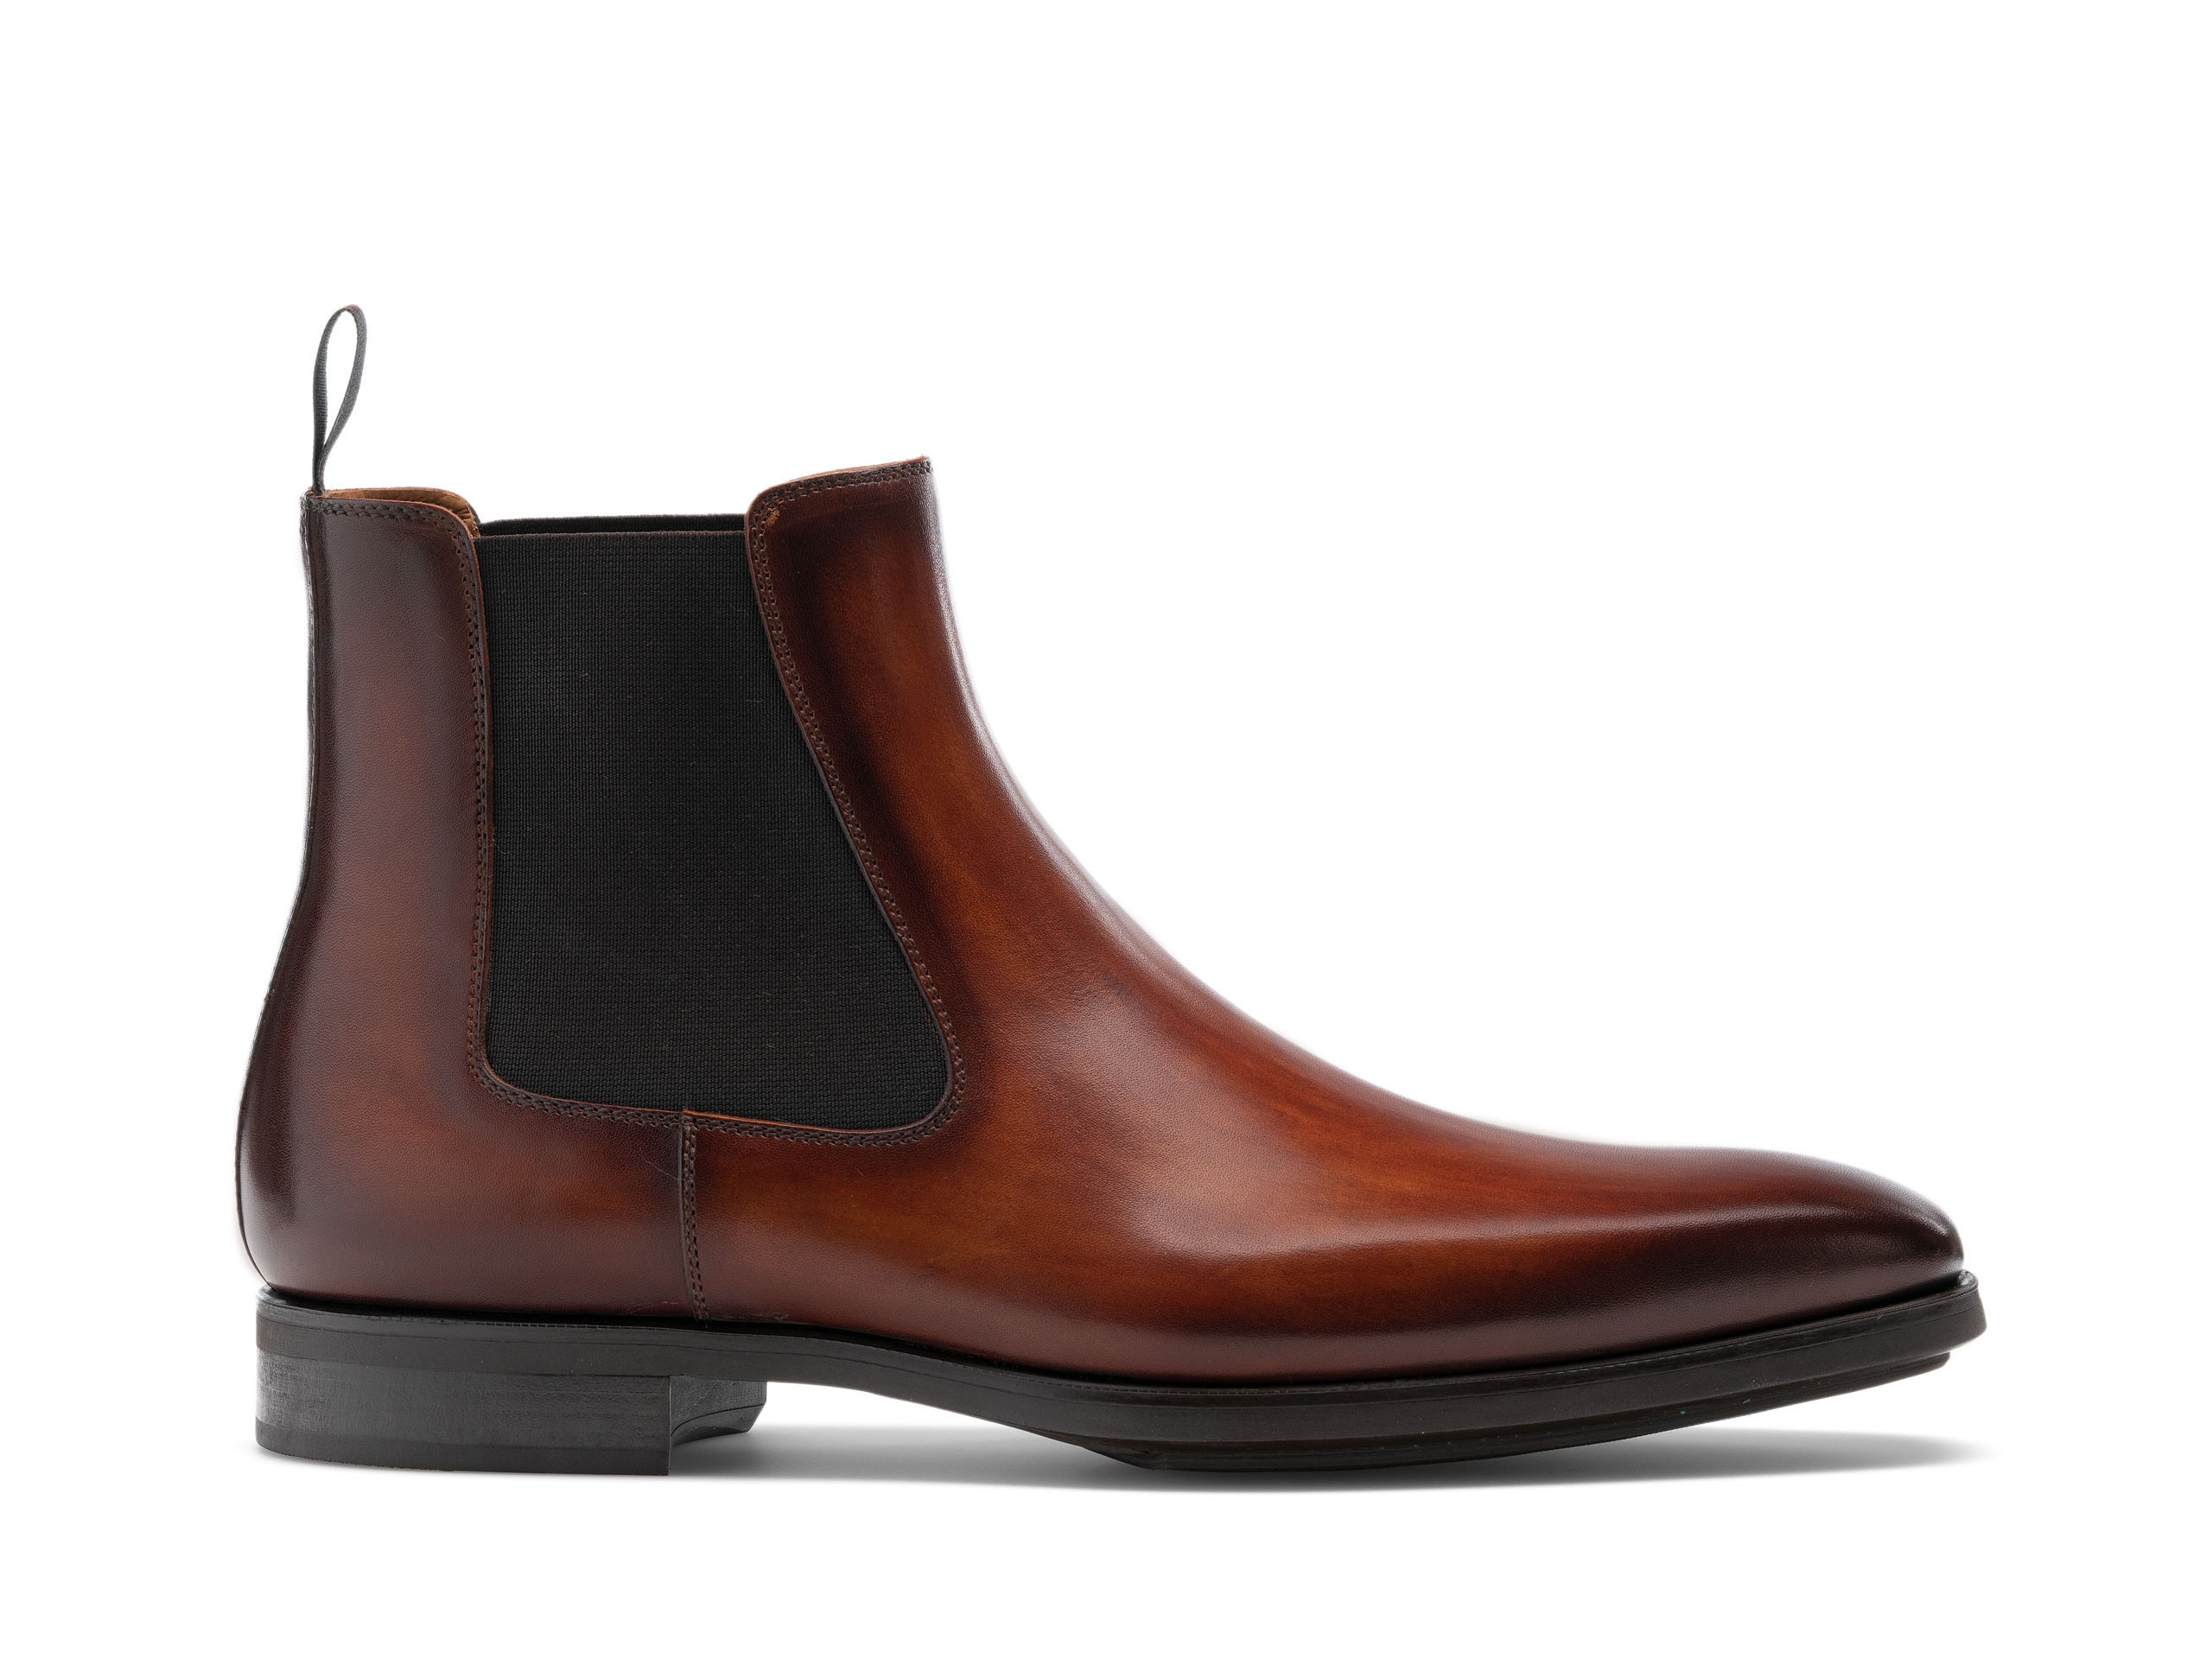 Side view of the Magnanni Riley Cognac Men's Leather Chelsea Boots